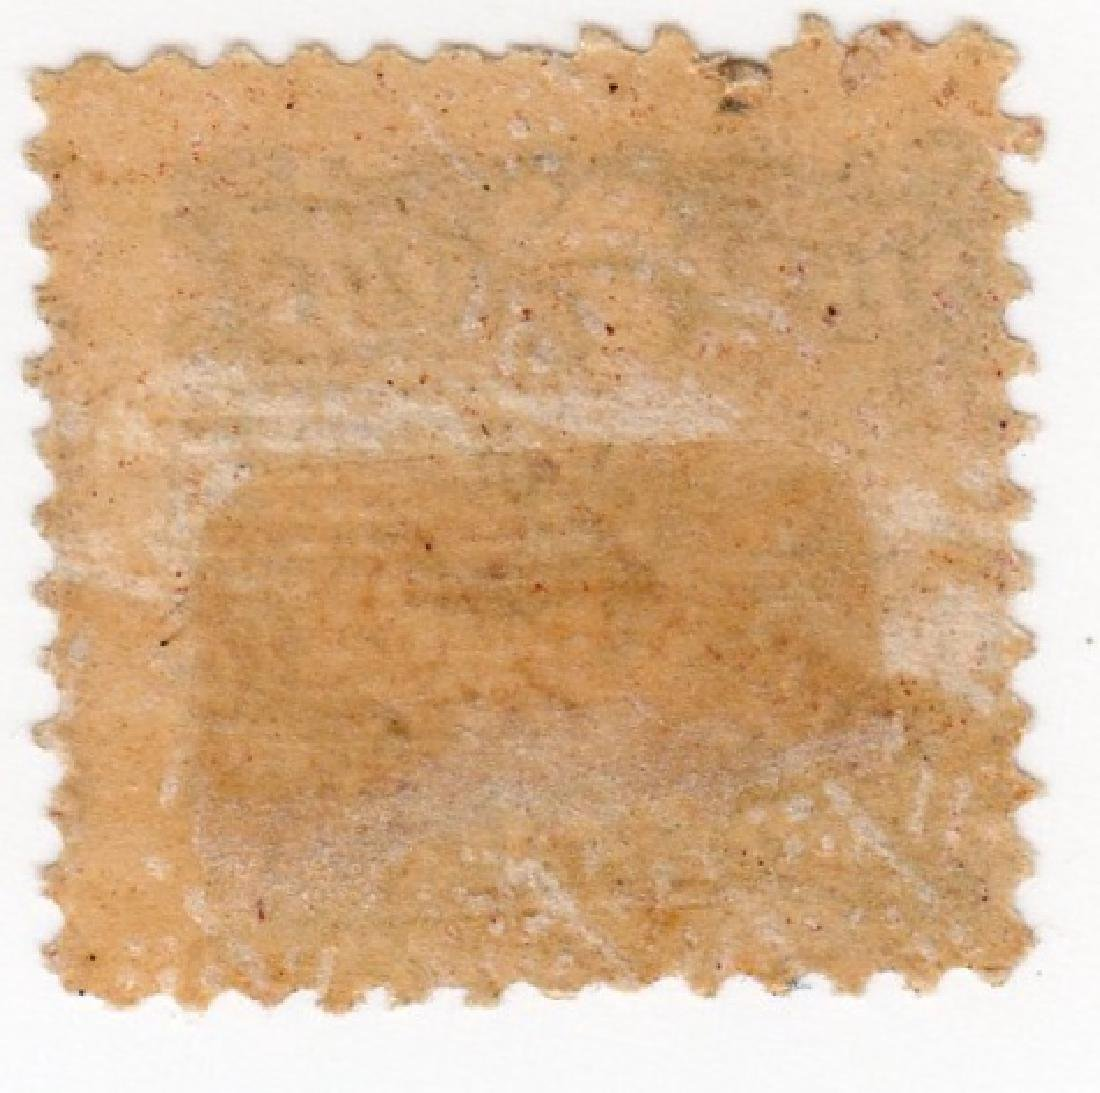 US 1869 2 cents Post horse & rider stamp - 2